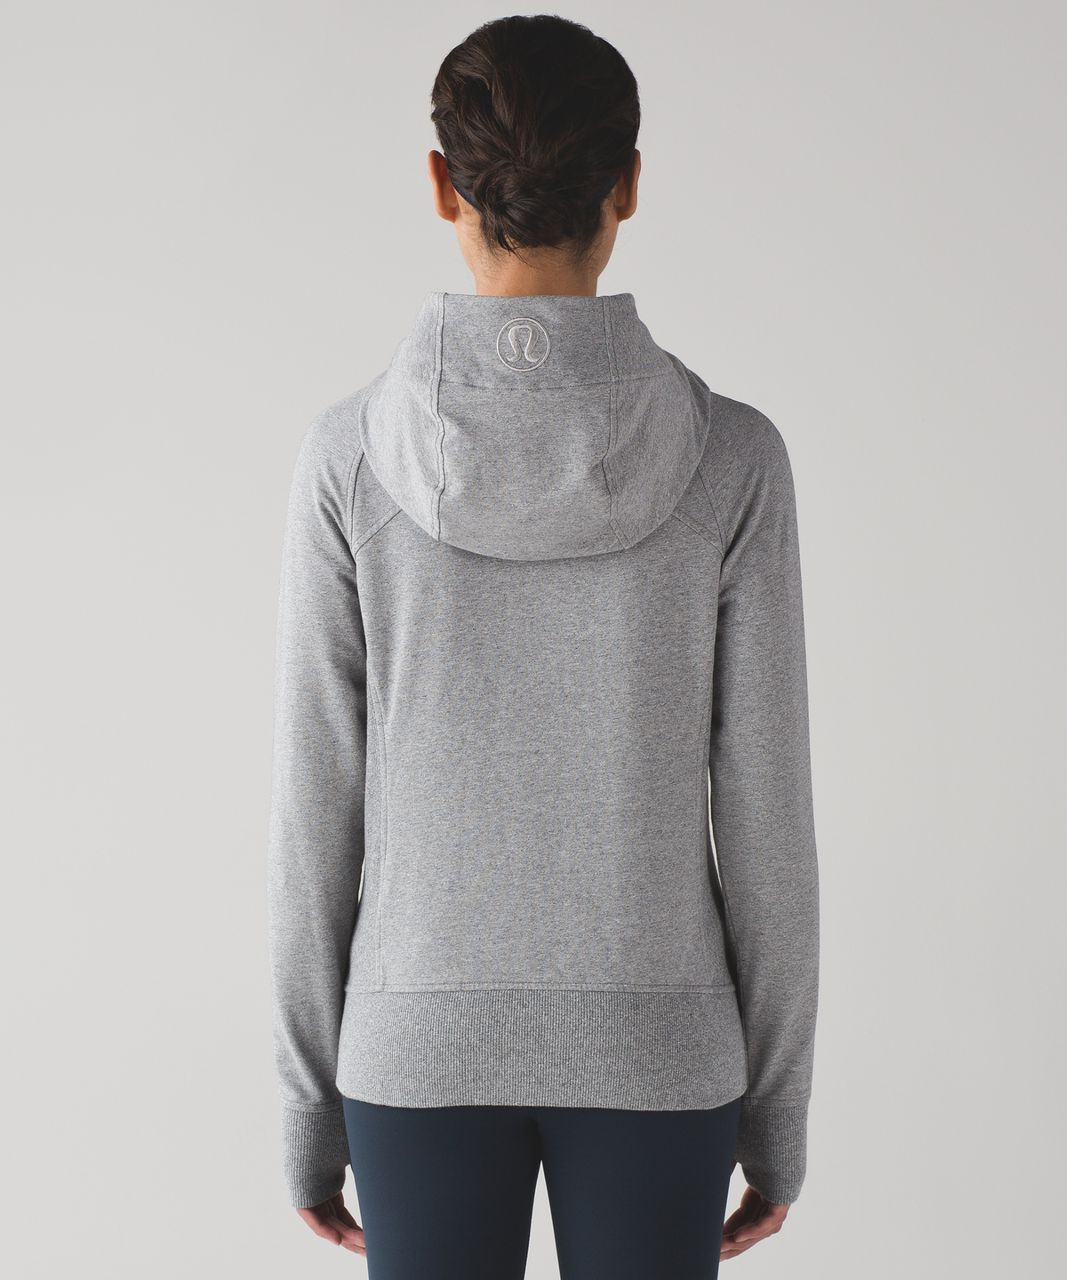 Lululemon Scuba Hoodie IV (Terry) - Heathered Speckled Medium Grey